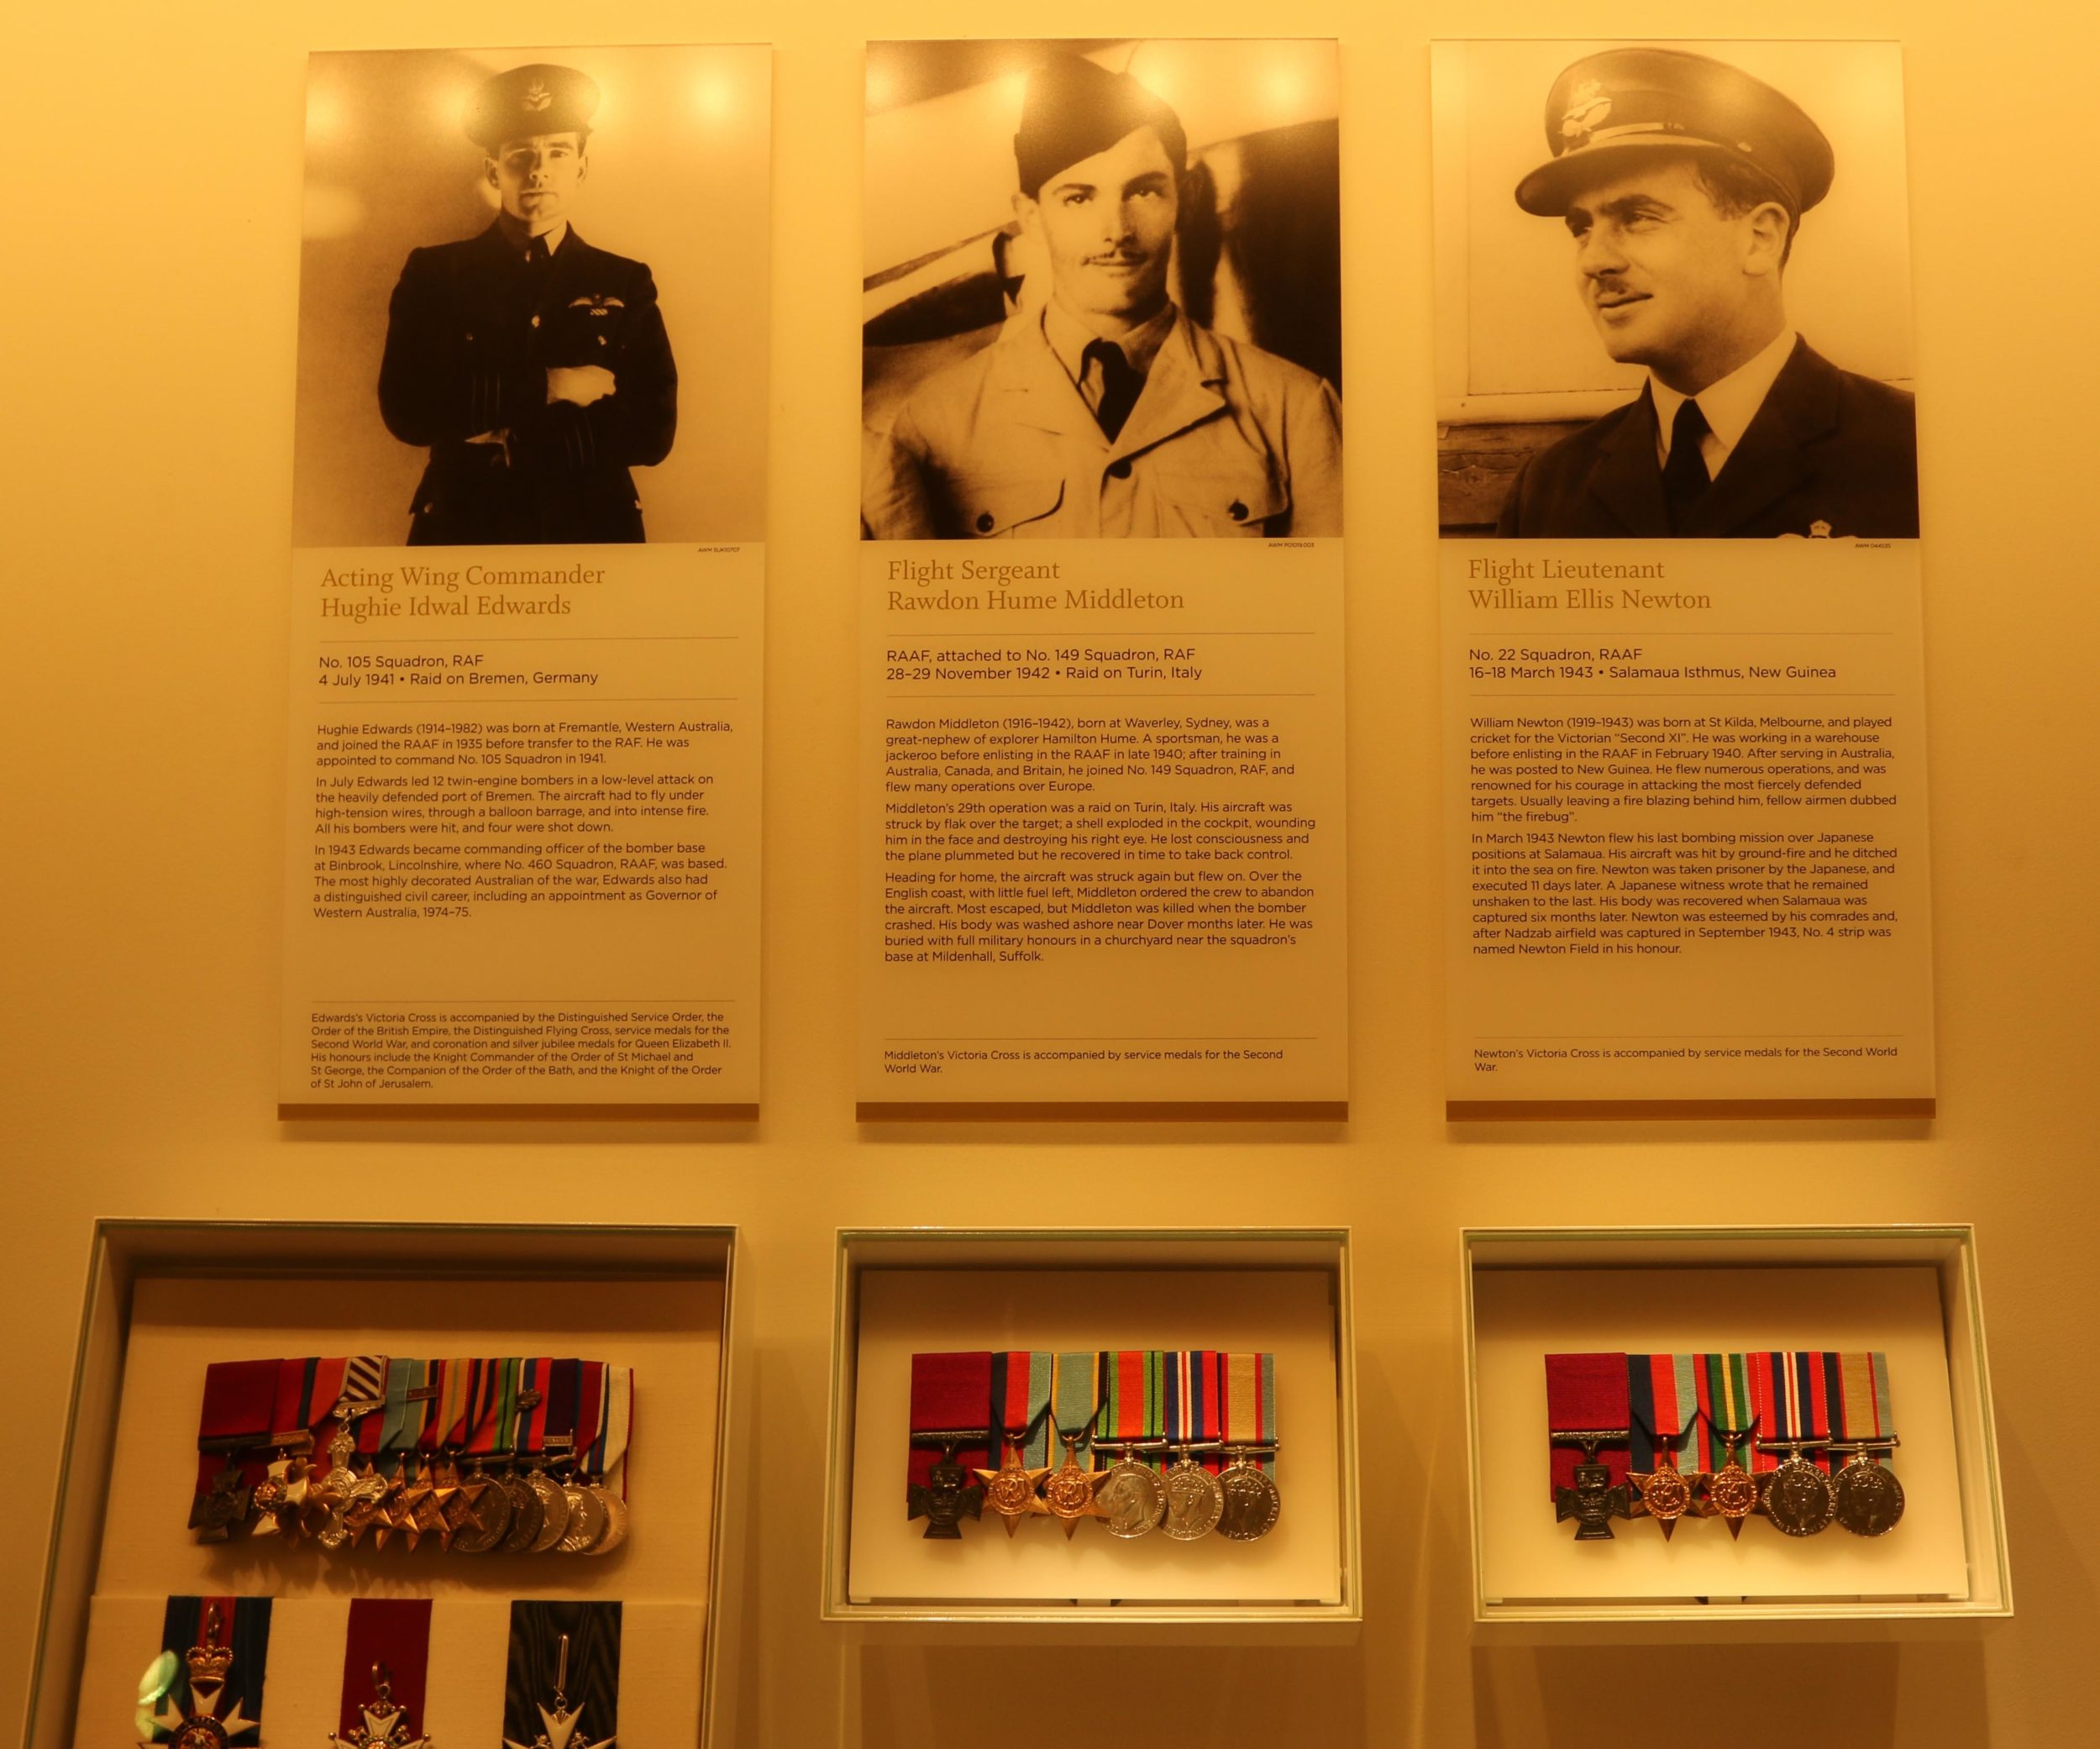 Hall of Valour at the Australian War Memorial in Canberra